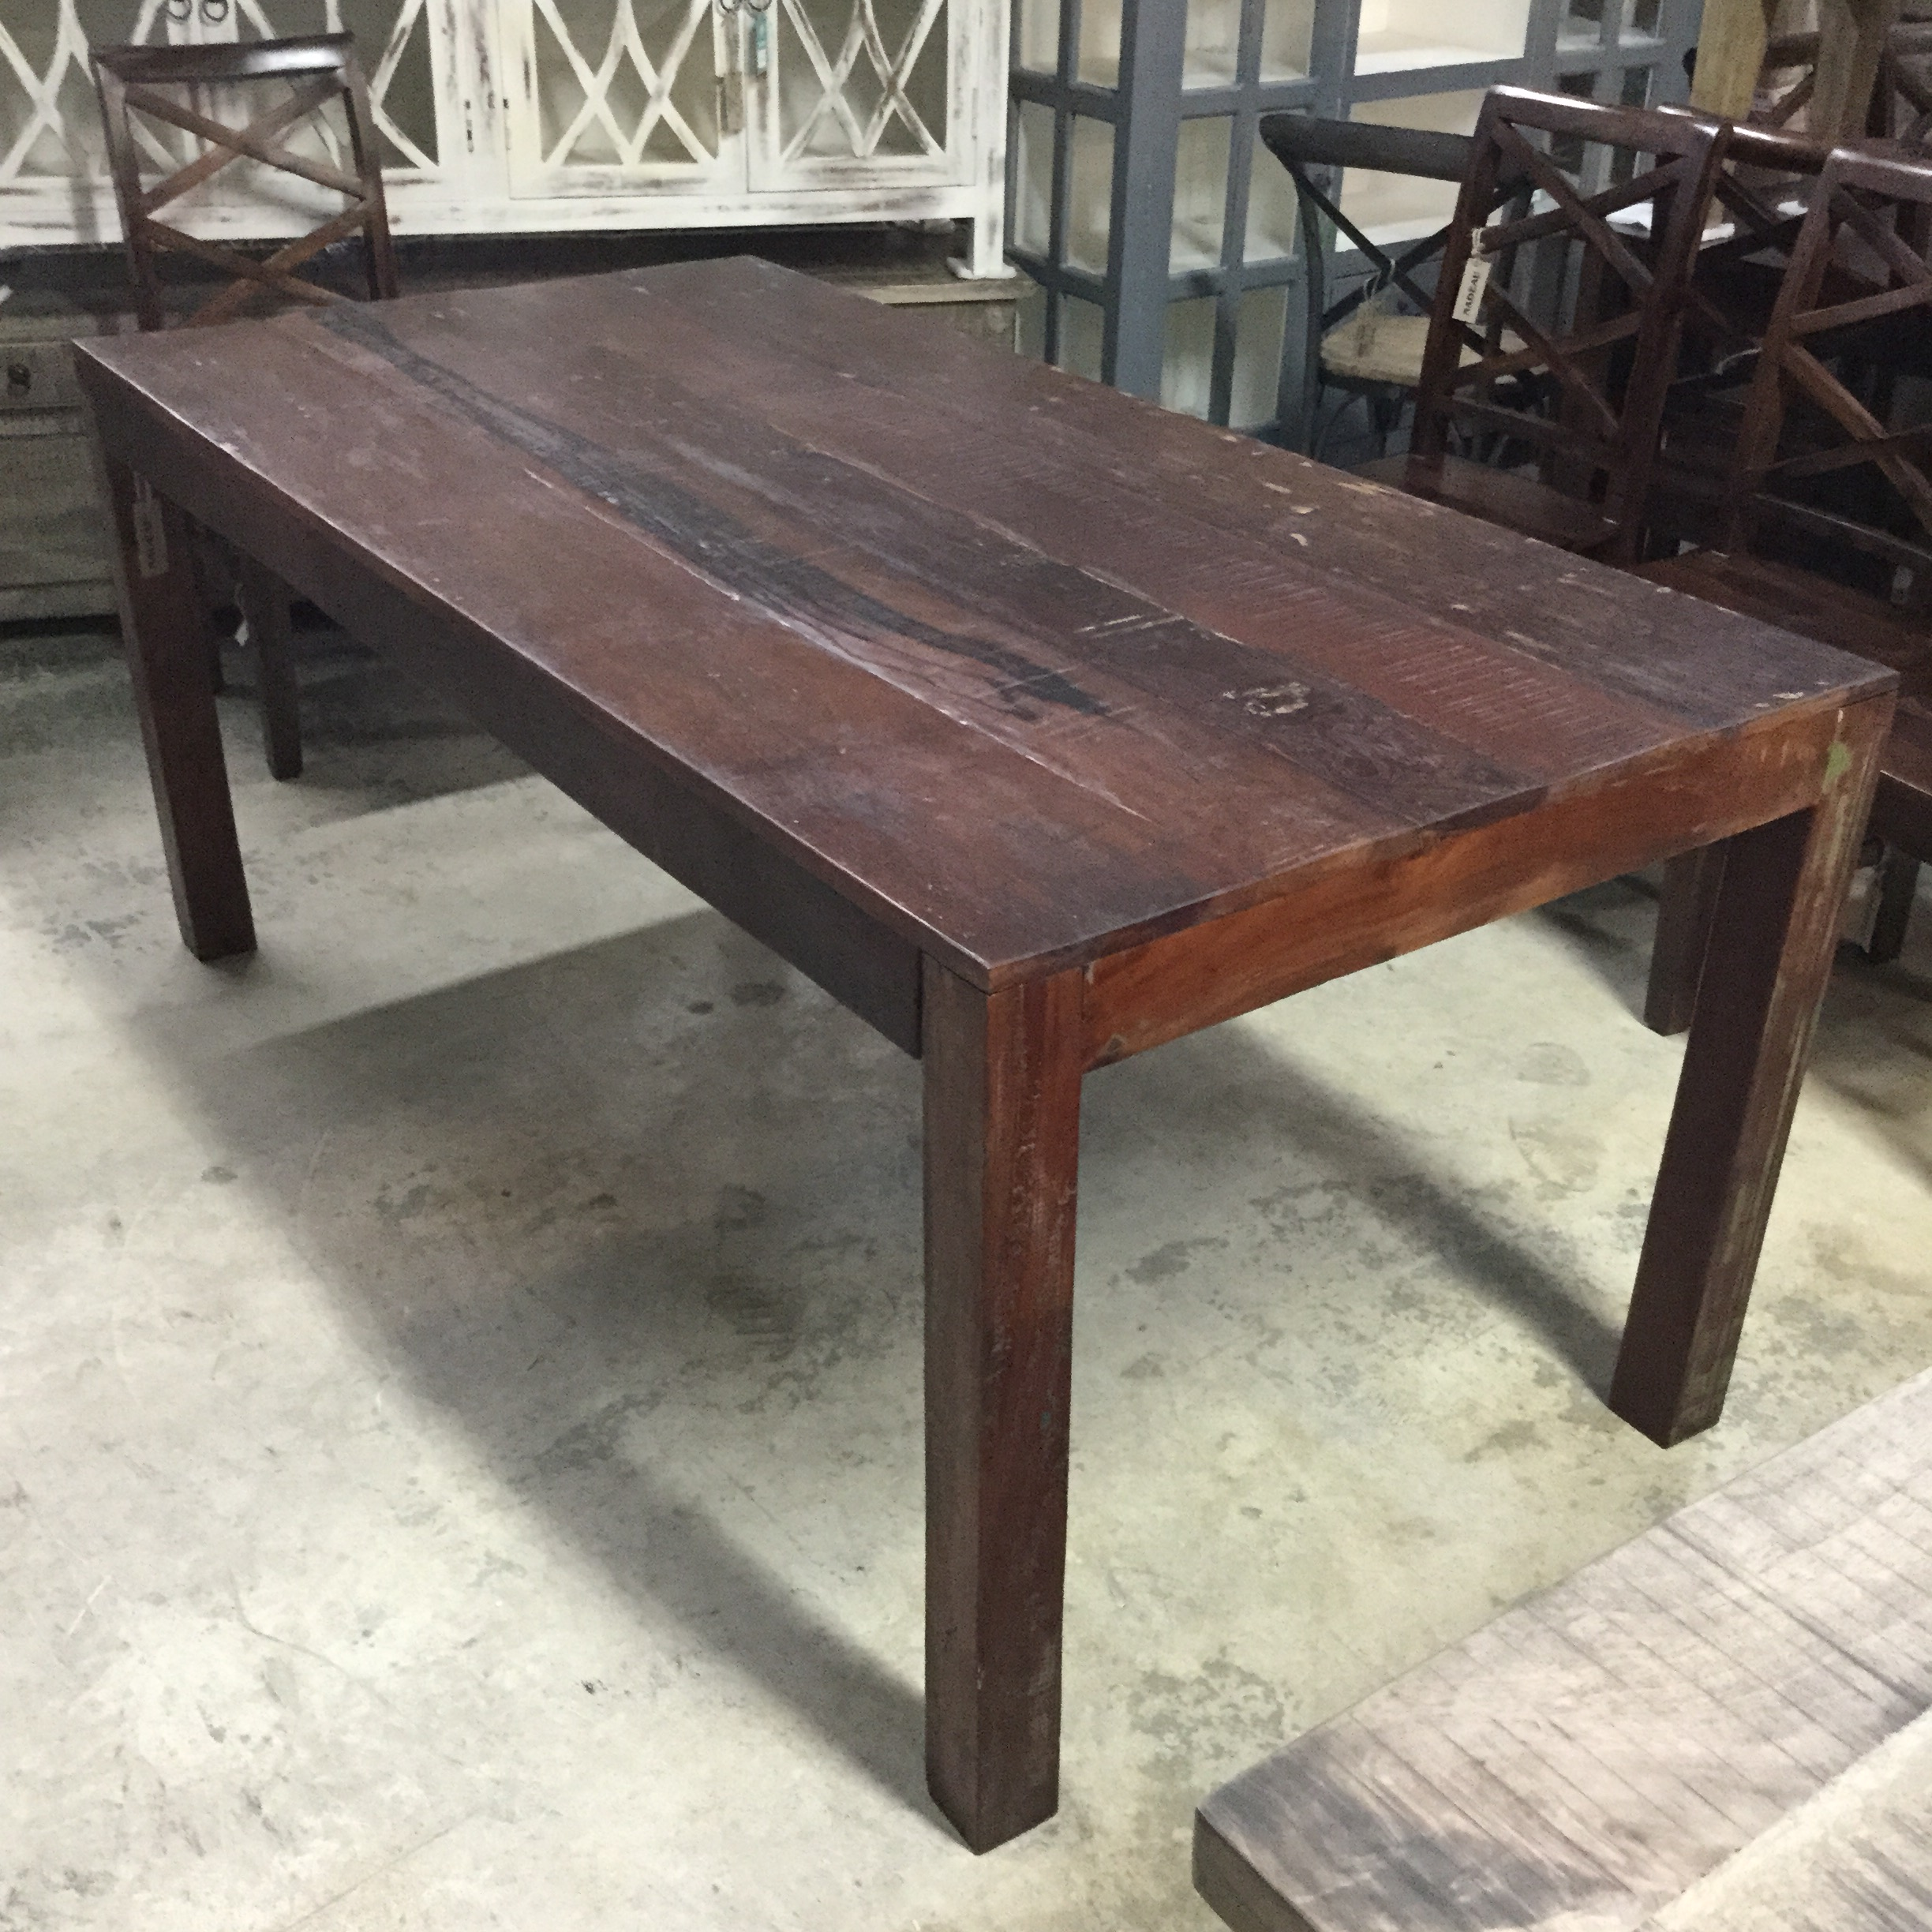 Reclaimed Wood Dining Table Nadeau Miami : AVR114 2 from www.furniturewithasoul.com size 2448 x 2448 jpeg 1213kB